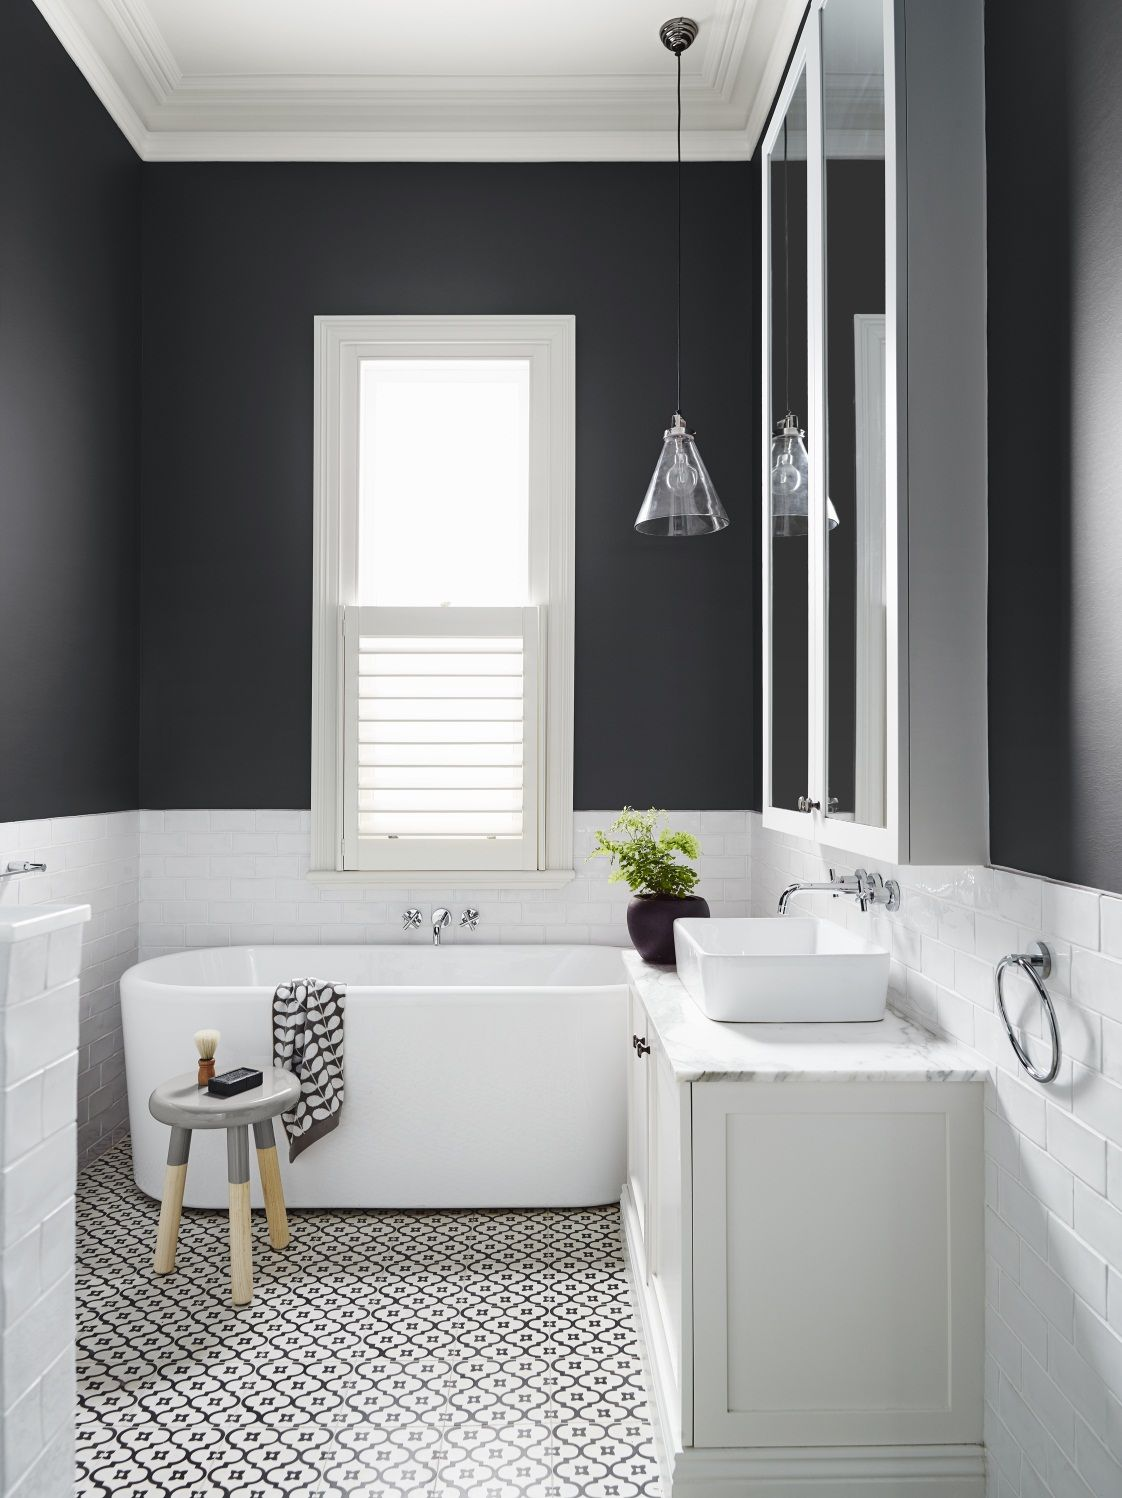 Bath under window ideas  love the lay out bath under window the colors vanity light